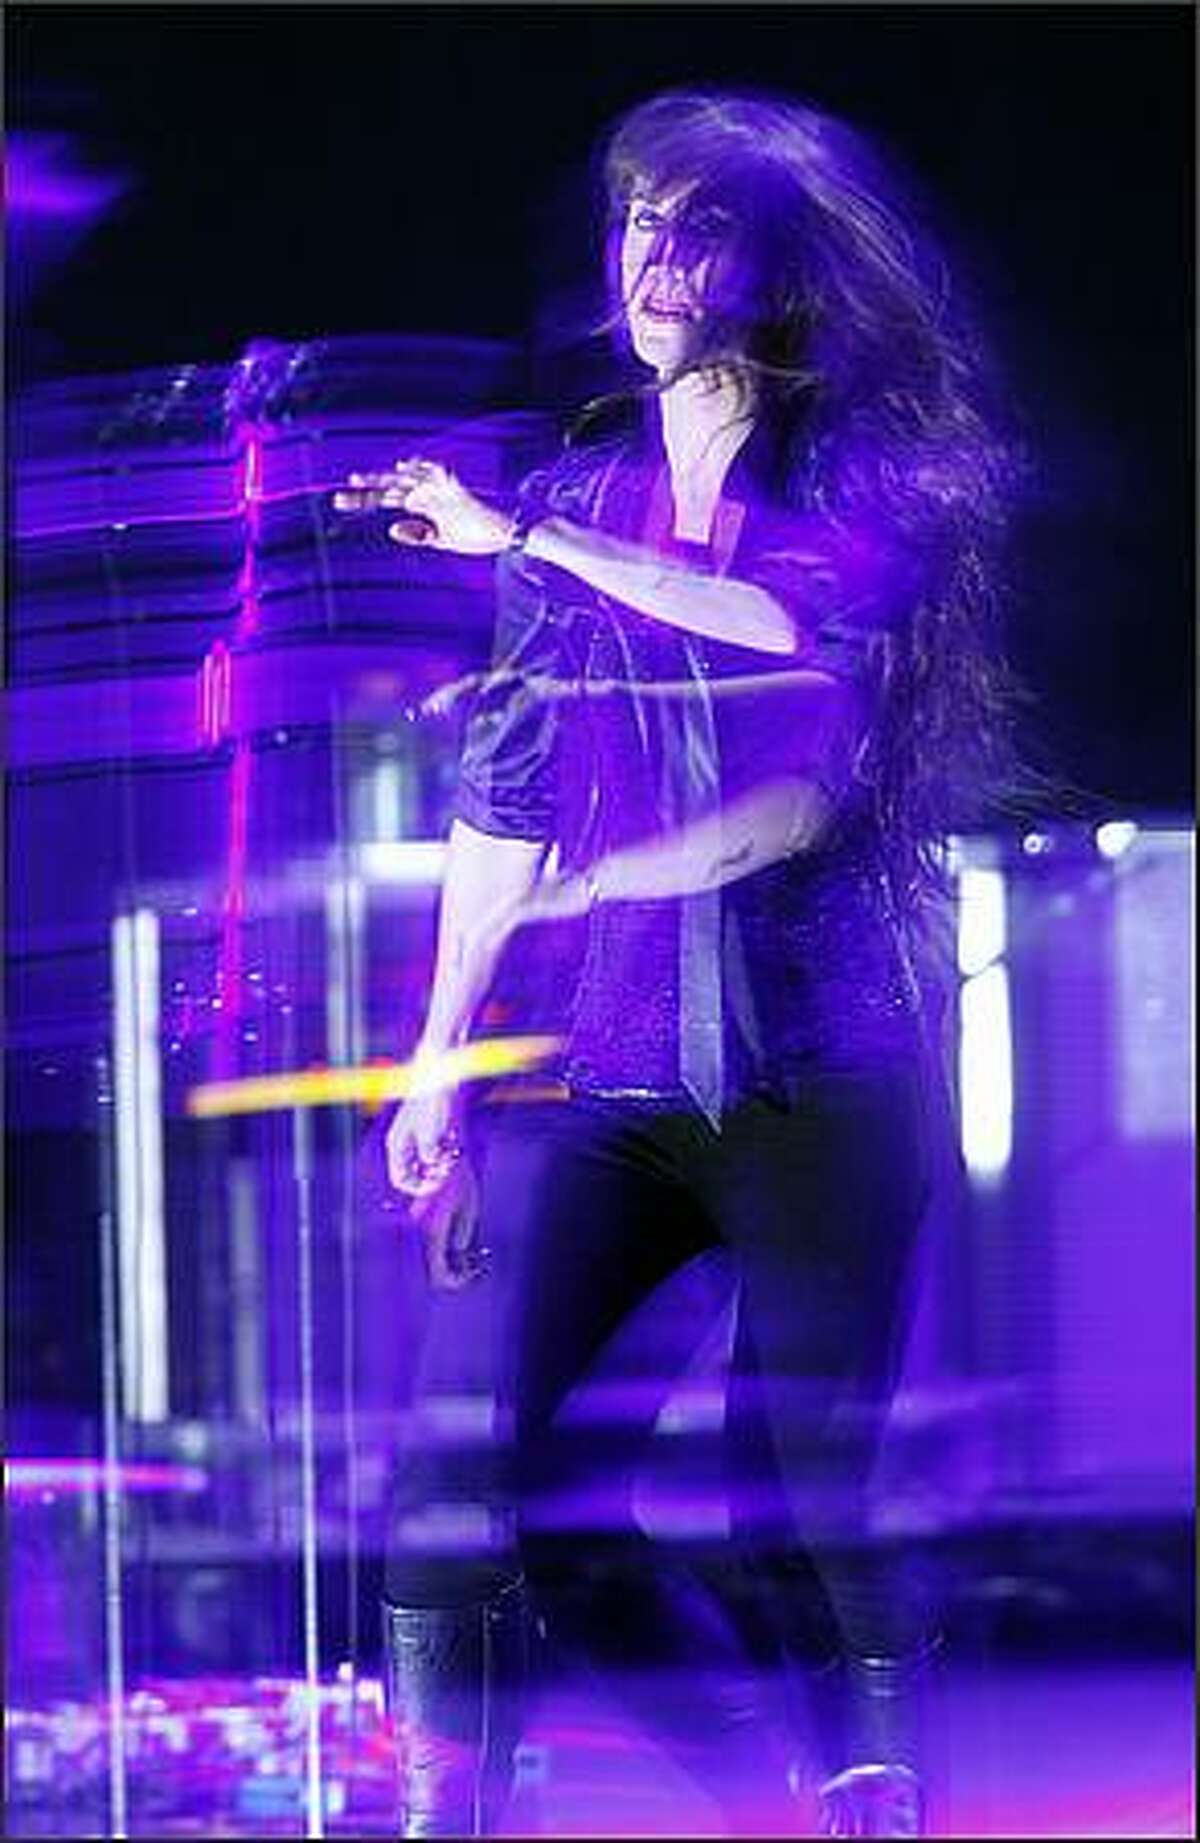 Illuminated by strobe lights and captured by a slow shutter speed Alanis Morissette plays the Paramount Theater.